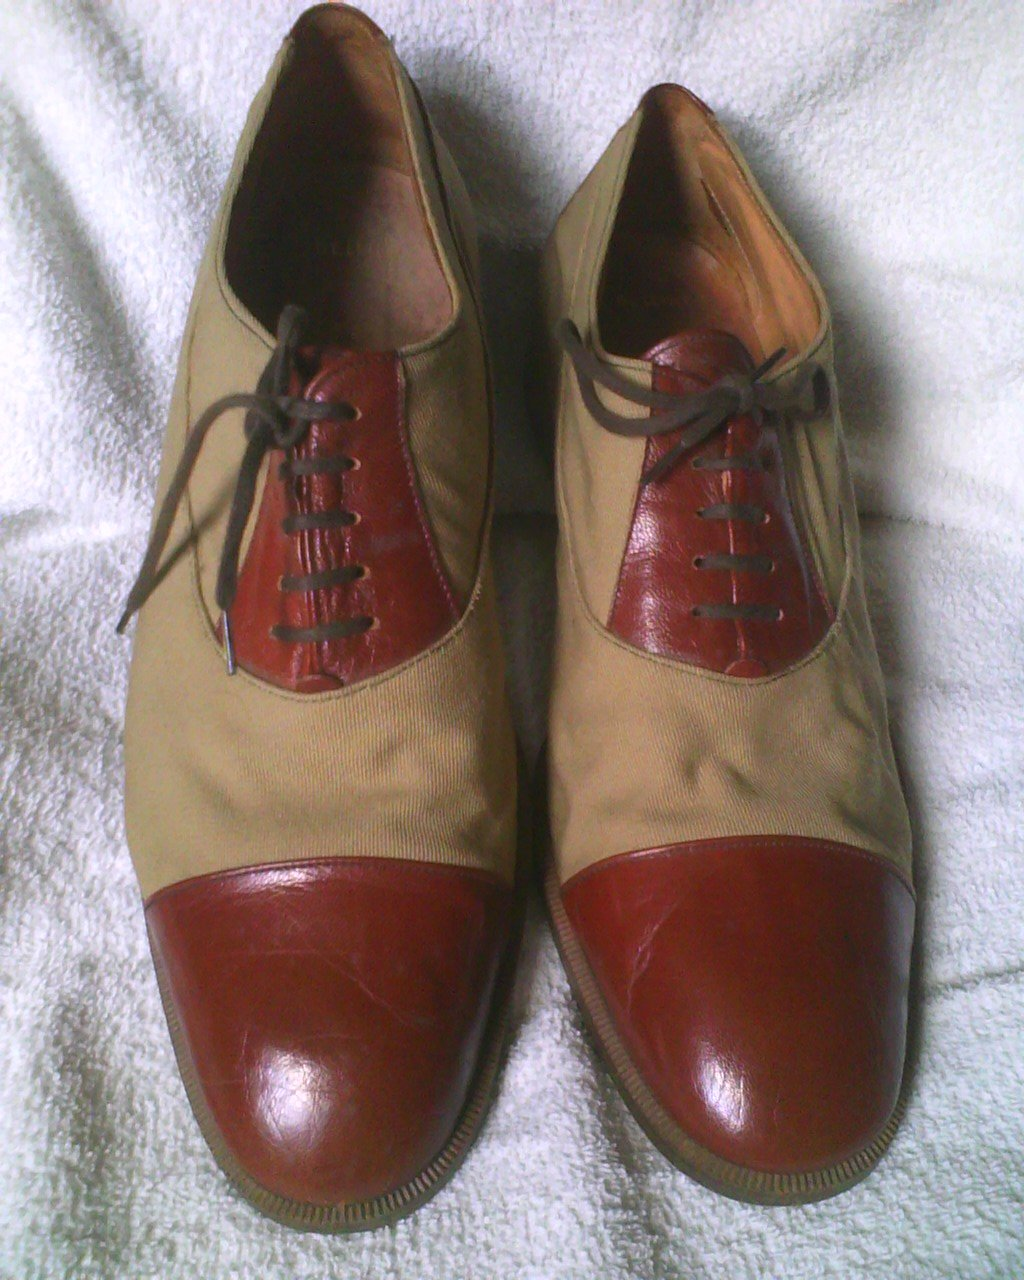 BALLY OF SWITZERLAND CANVAS/LEATHER DRESS SHOES 9 1/2M ITALY LATE 1970'S USED